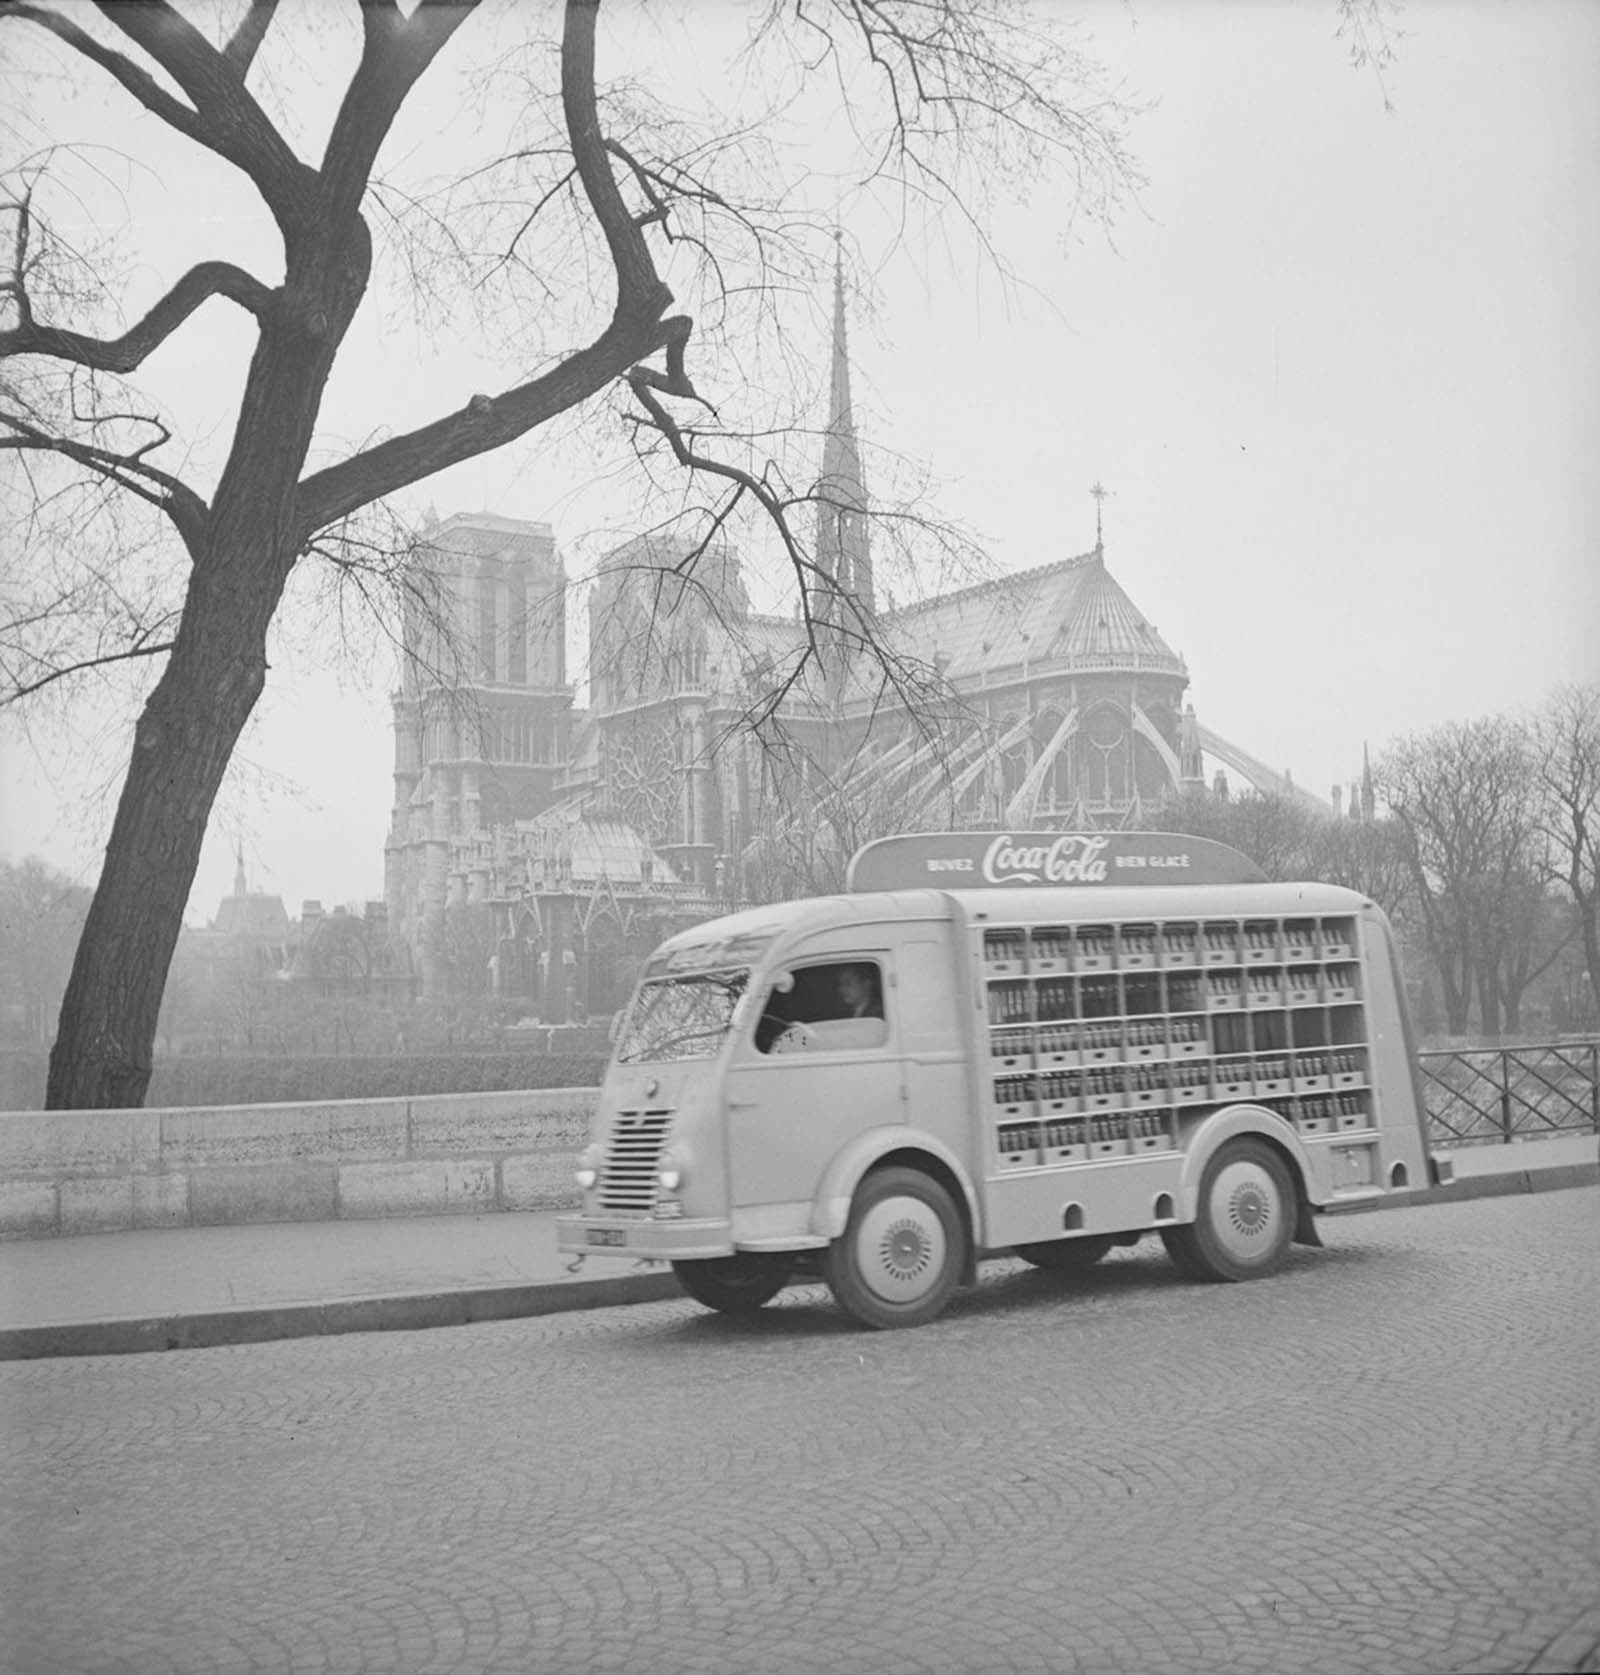 View of a Coca-Cola delivery truck as it crosses Pont de l'Archeveche, near the cathedral Notre Dame de Paris.